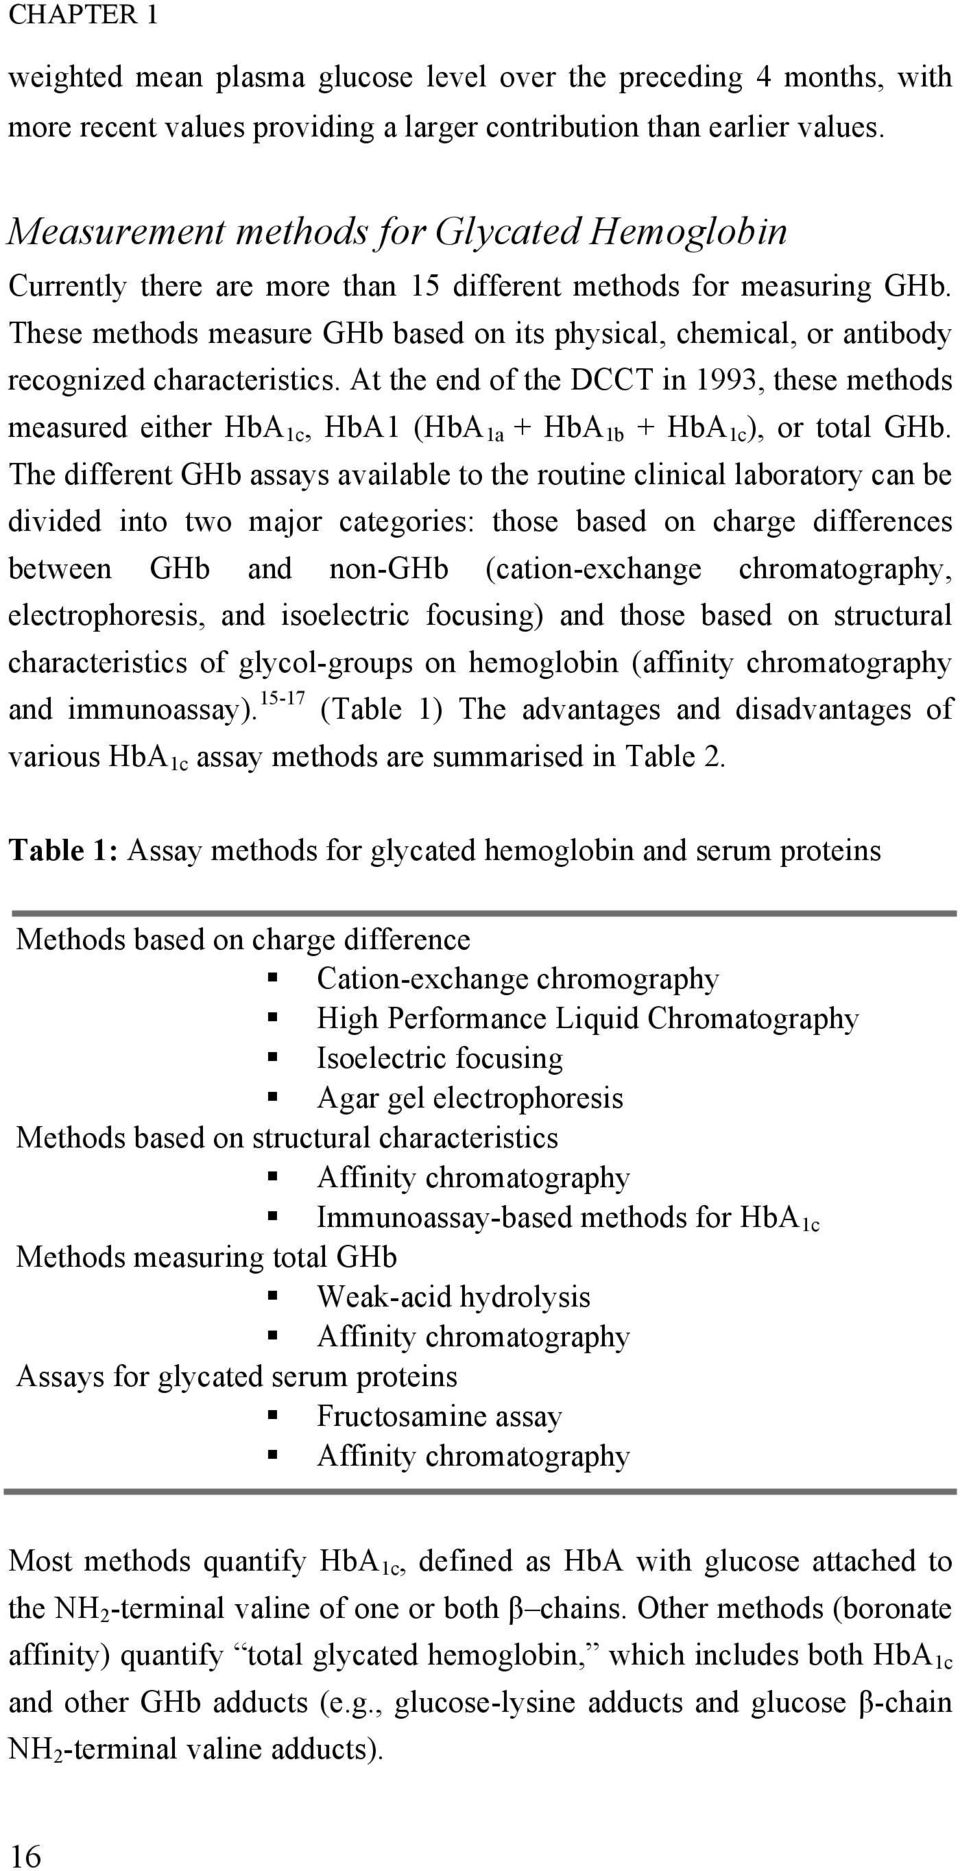 These methods measure GHb based on its physical, chemical, or antibody recognized characteristics.